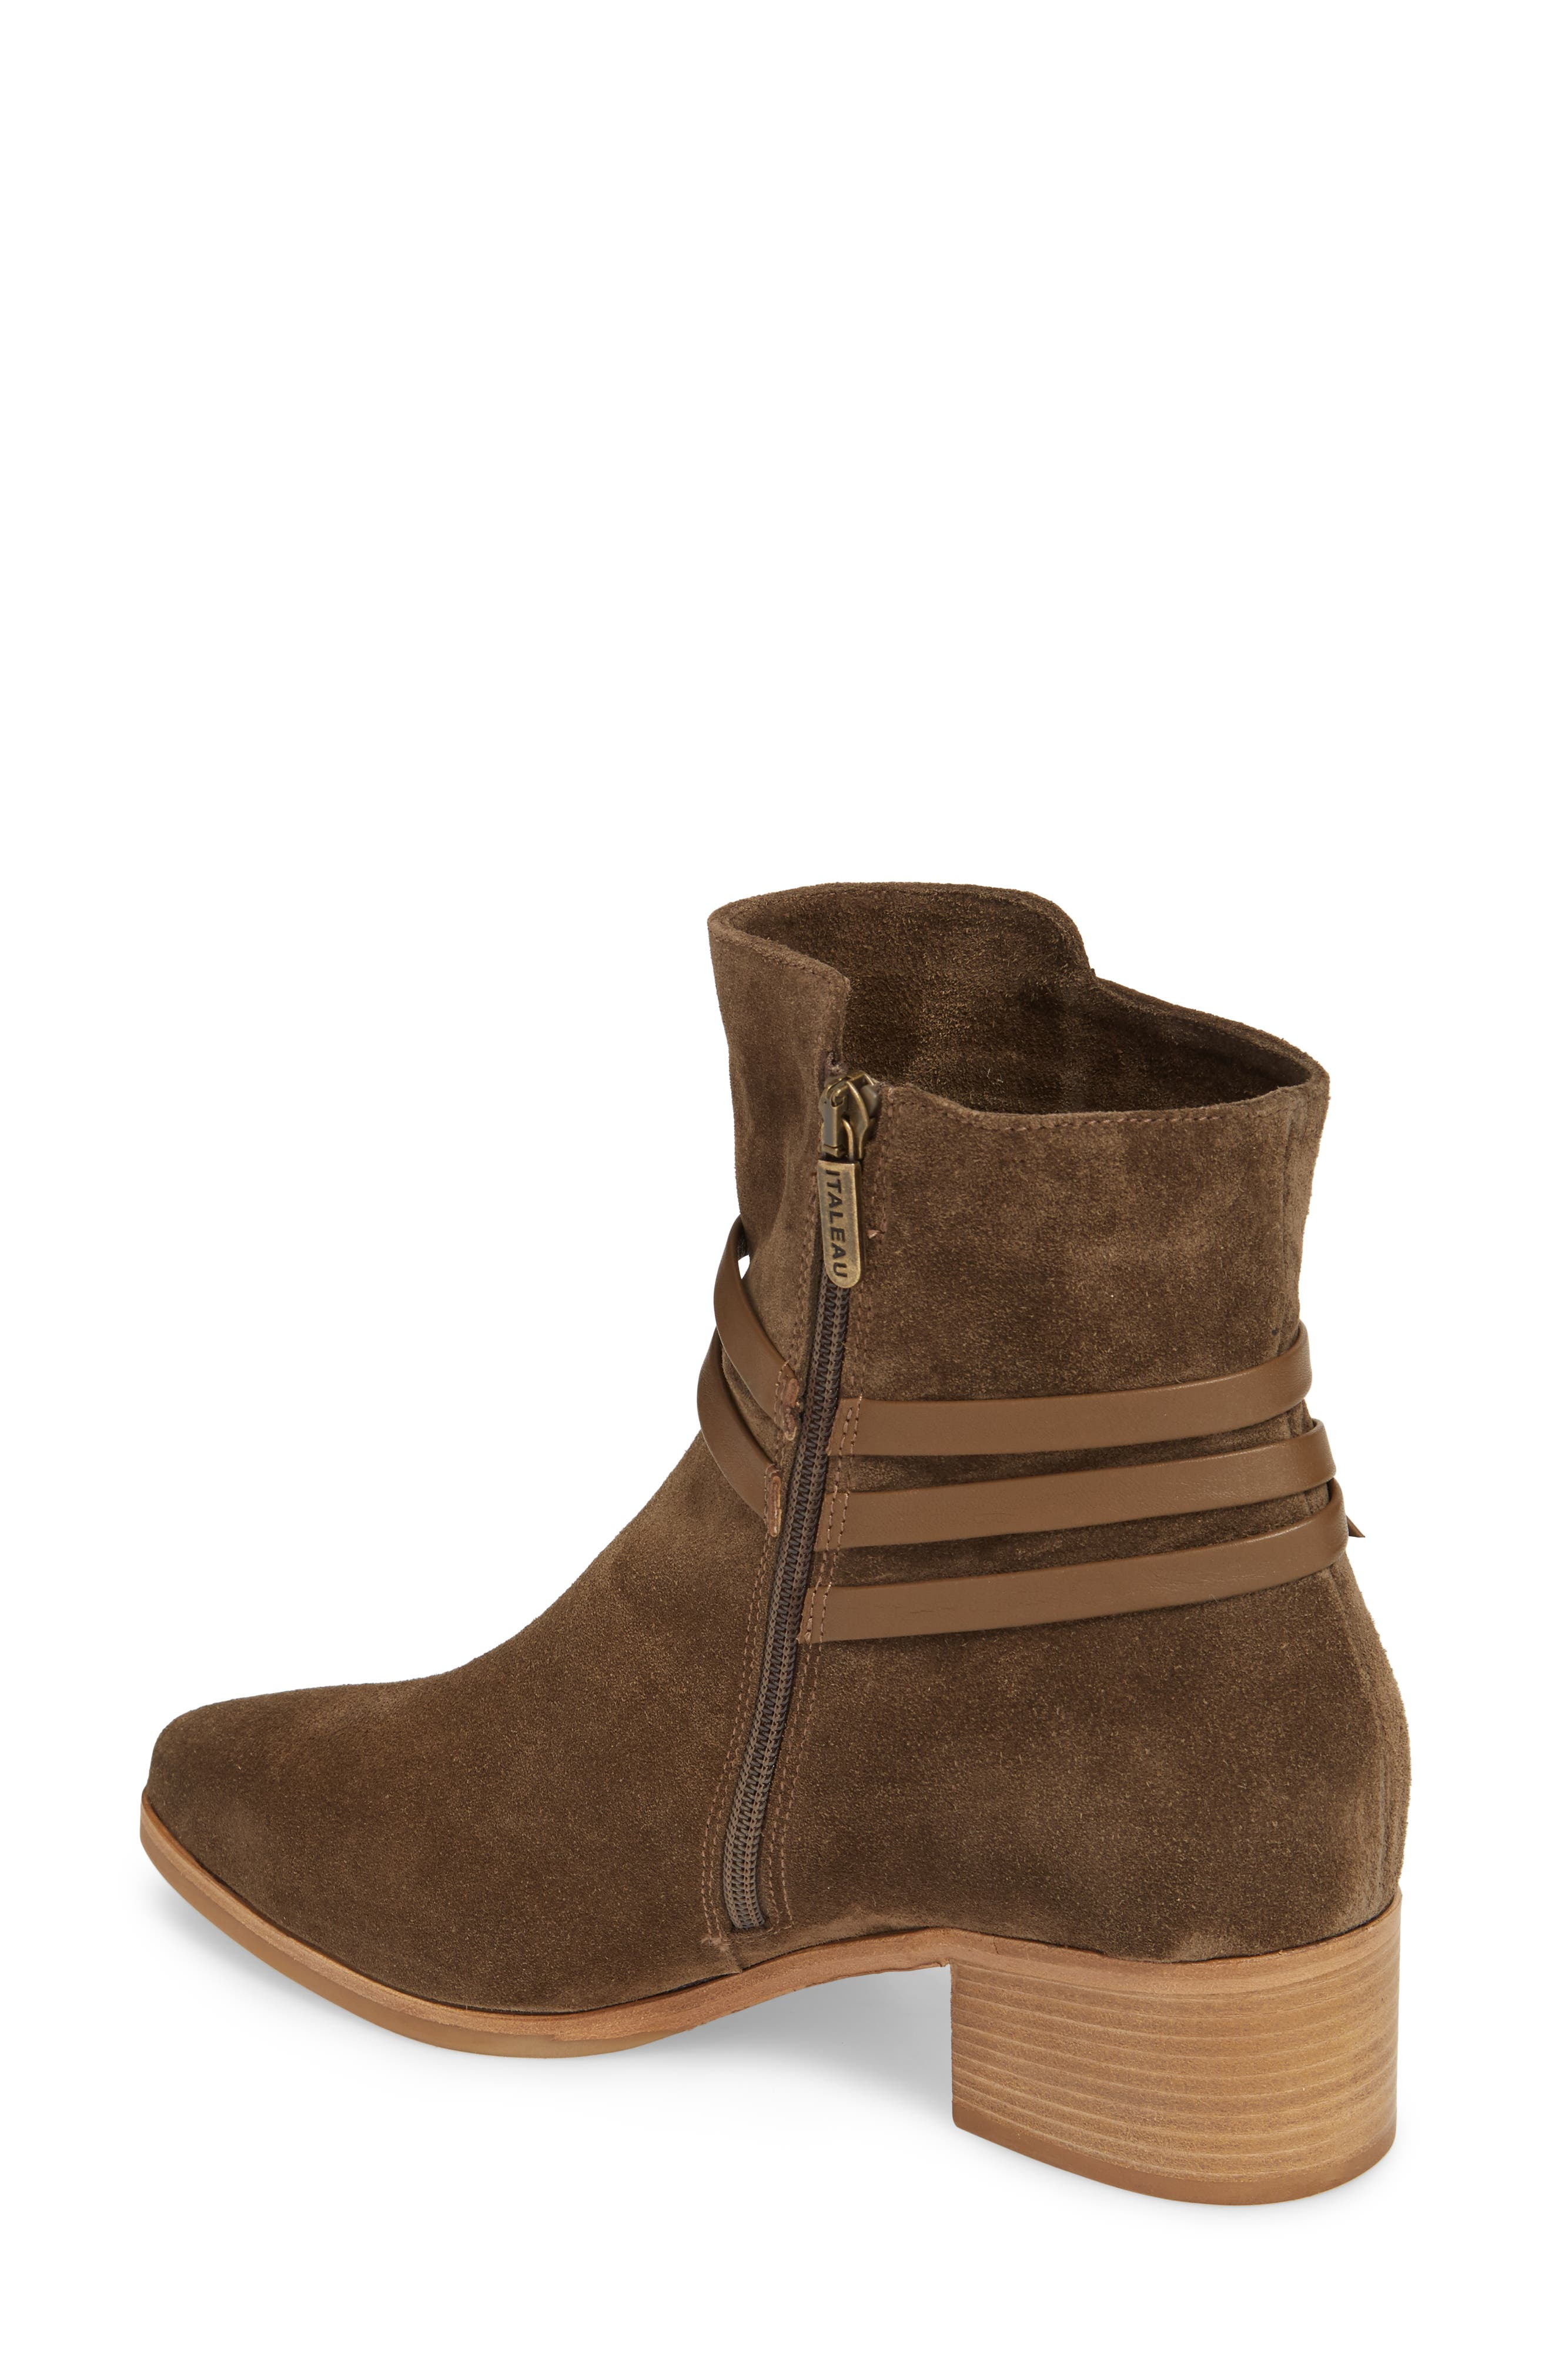 Donata Water-Resistant Bootie,                             Alternate thumbnail 2, color,                             340